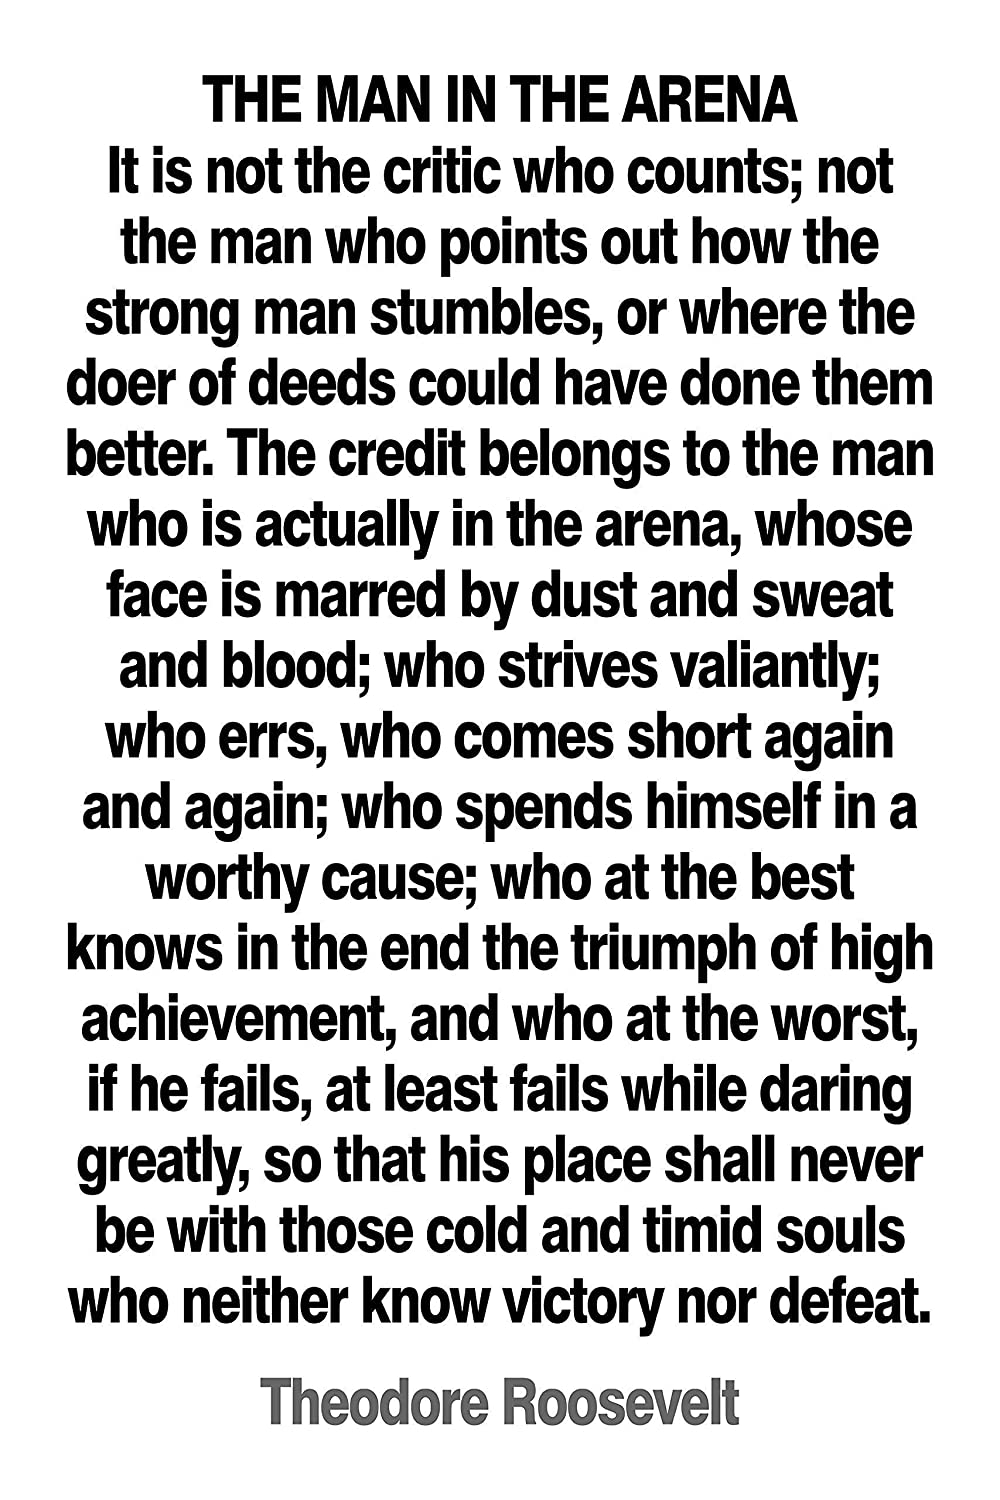 Theodore Roosevelt Man in the Arena Literary quote Art print gift poster gift